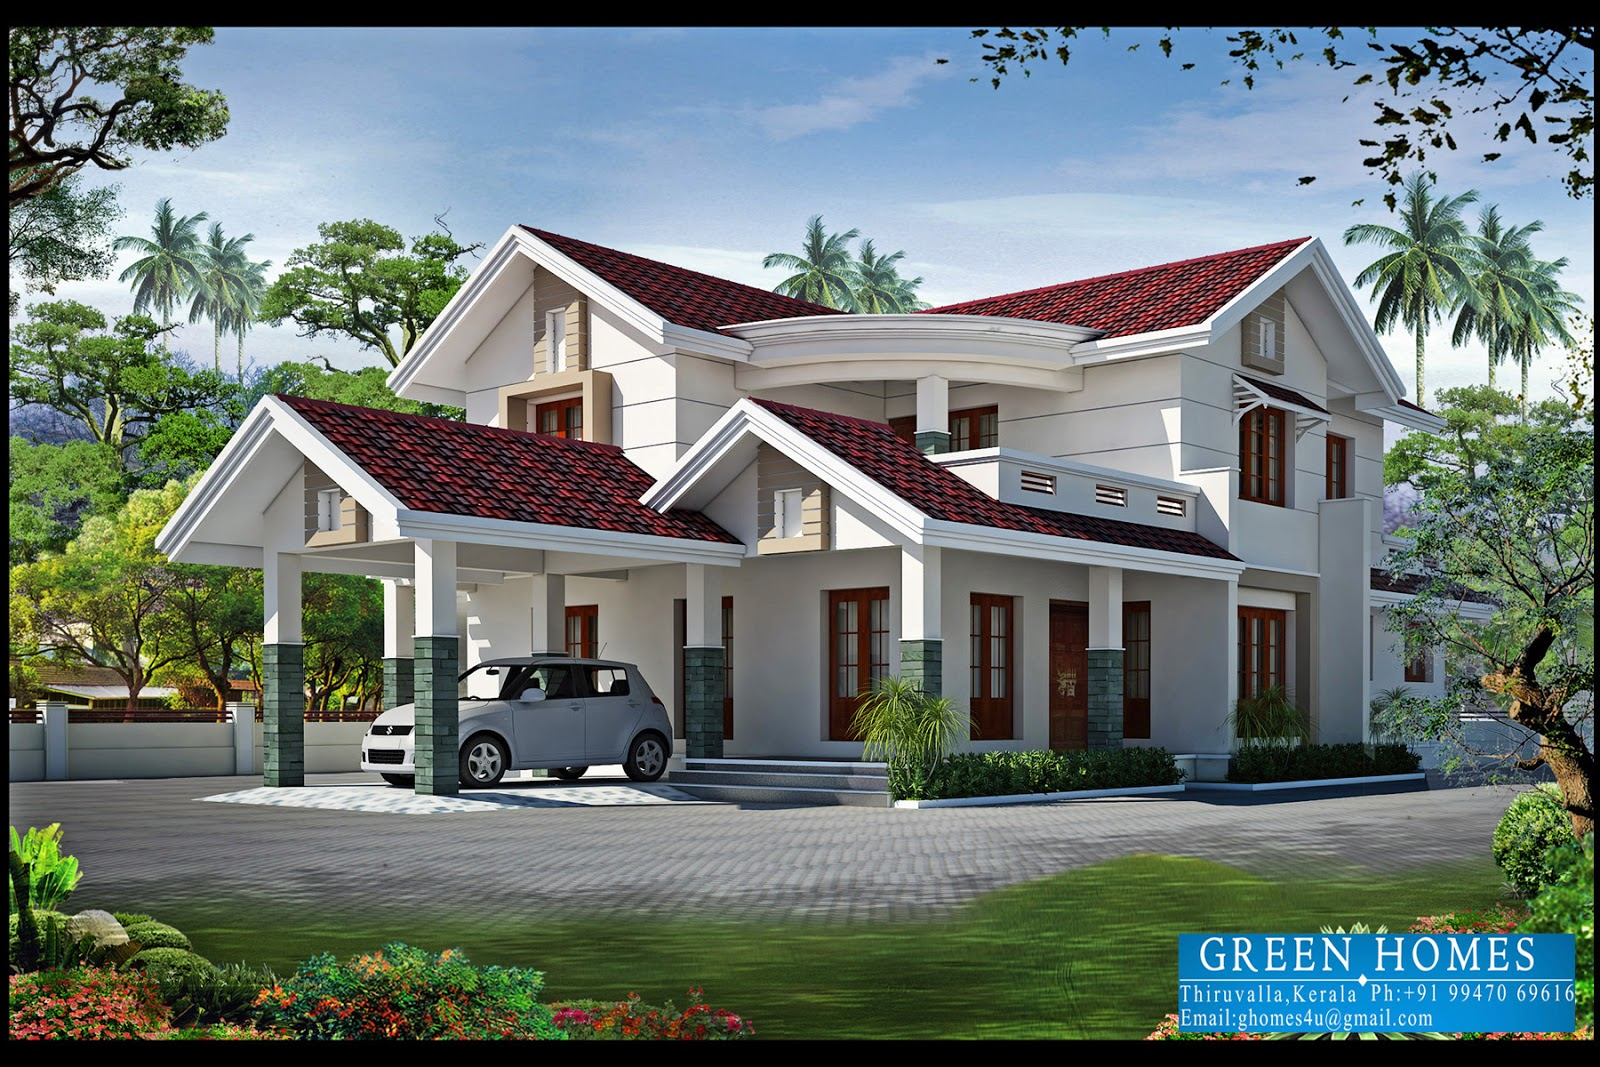 Green homes december 2012 for New home design ideas kerala